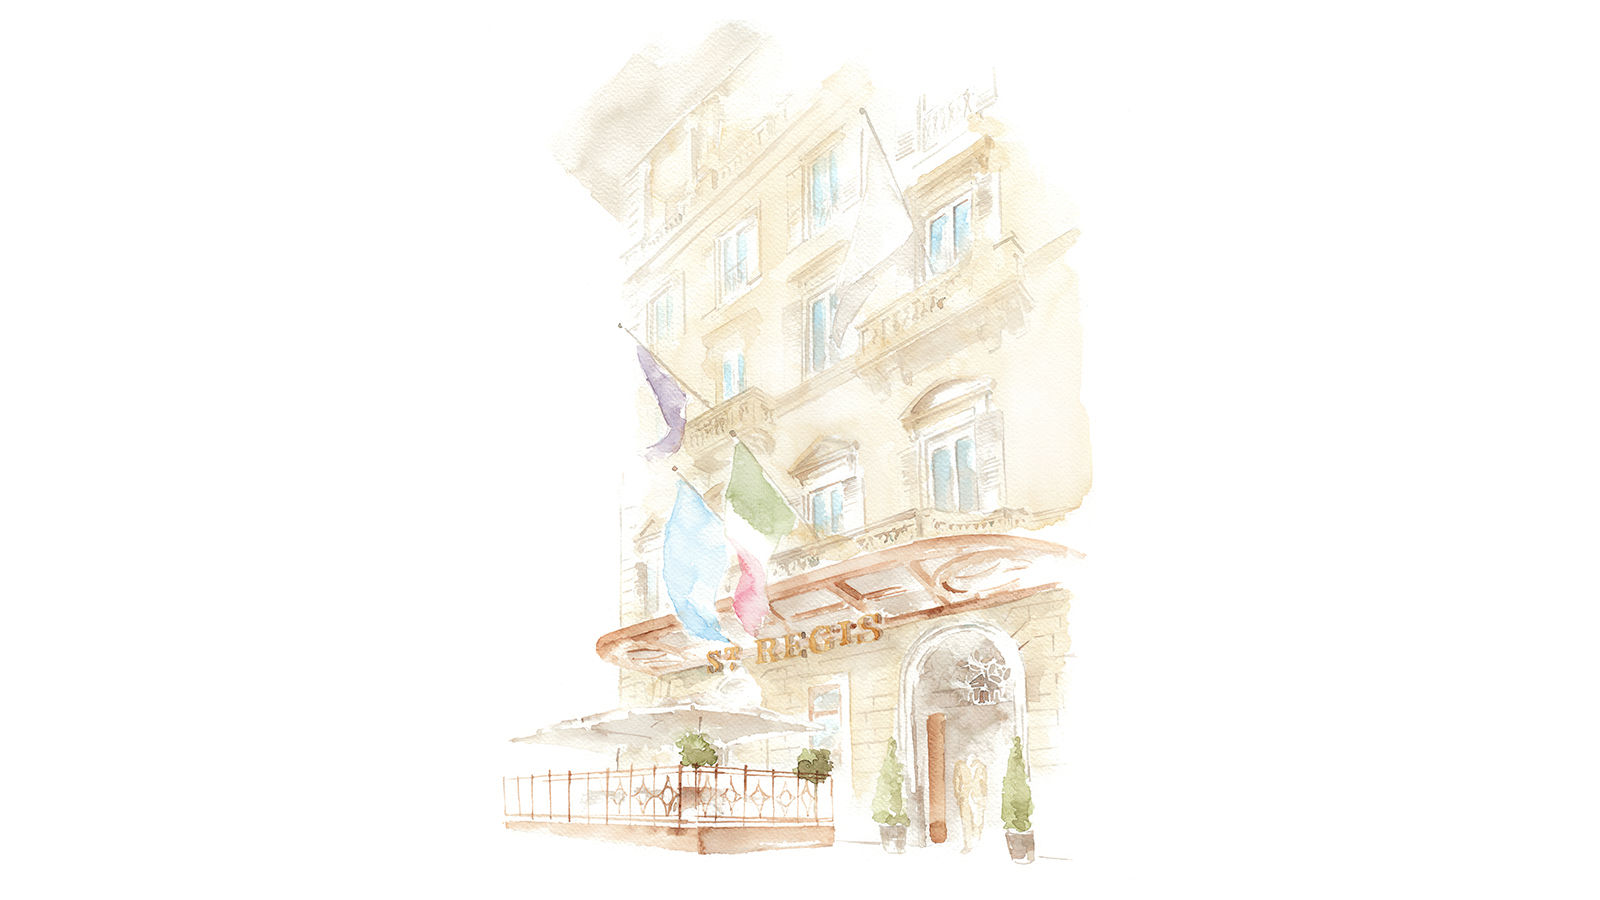 The St. Regis Florence Facade Illustration